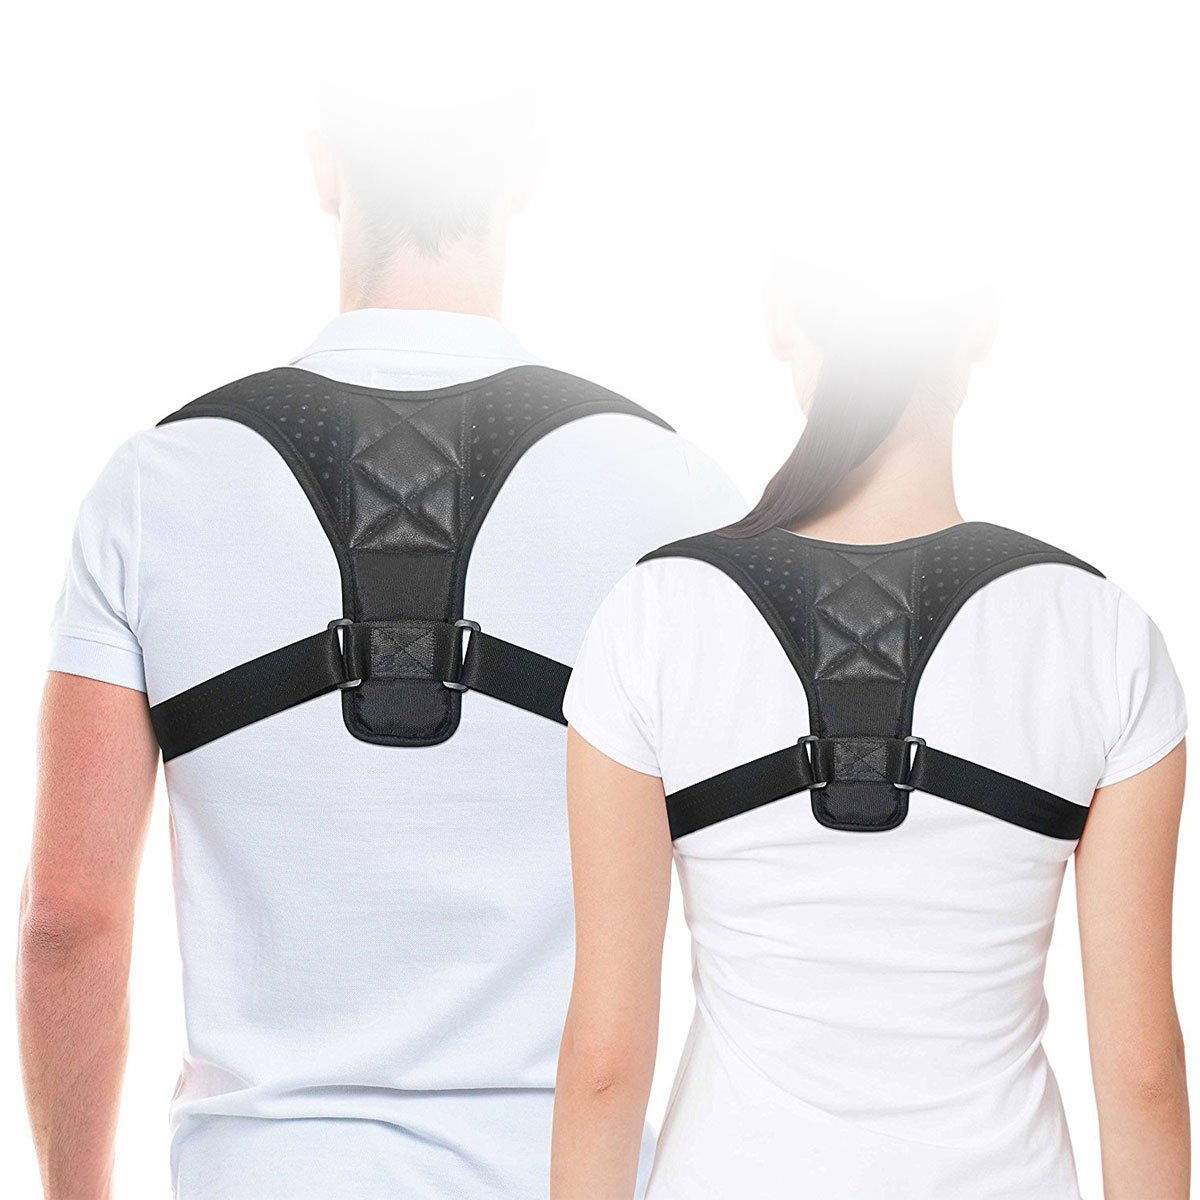 DRASE Adjustable Back Brace For Women & Men,Straighten Shoulder,Posture Support